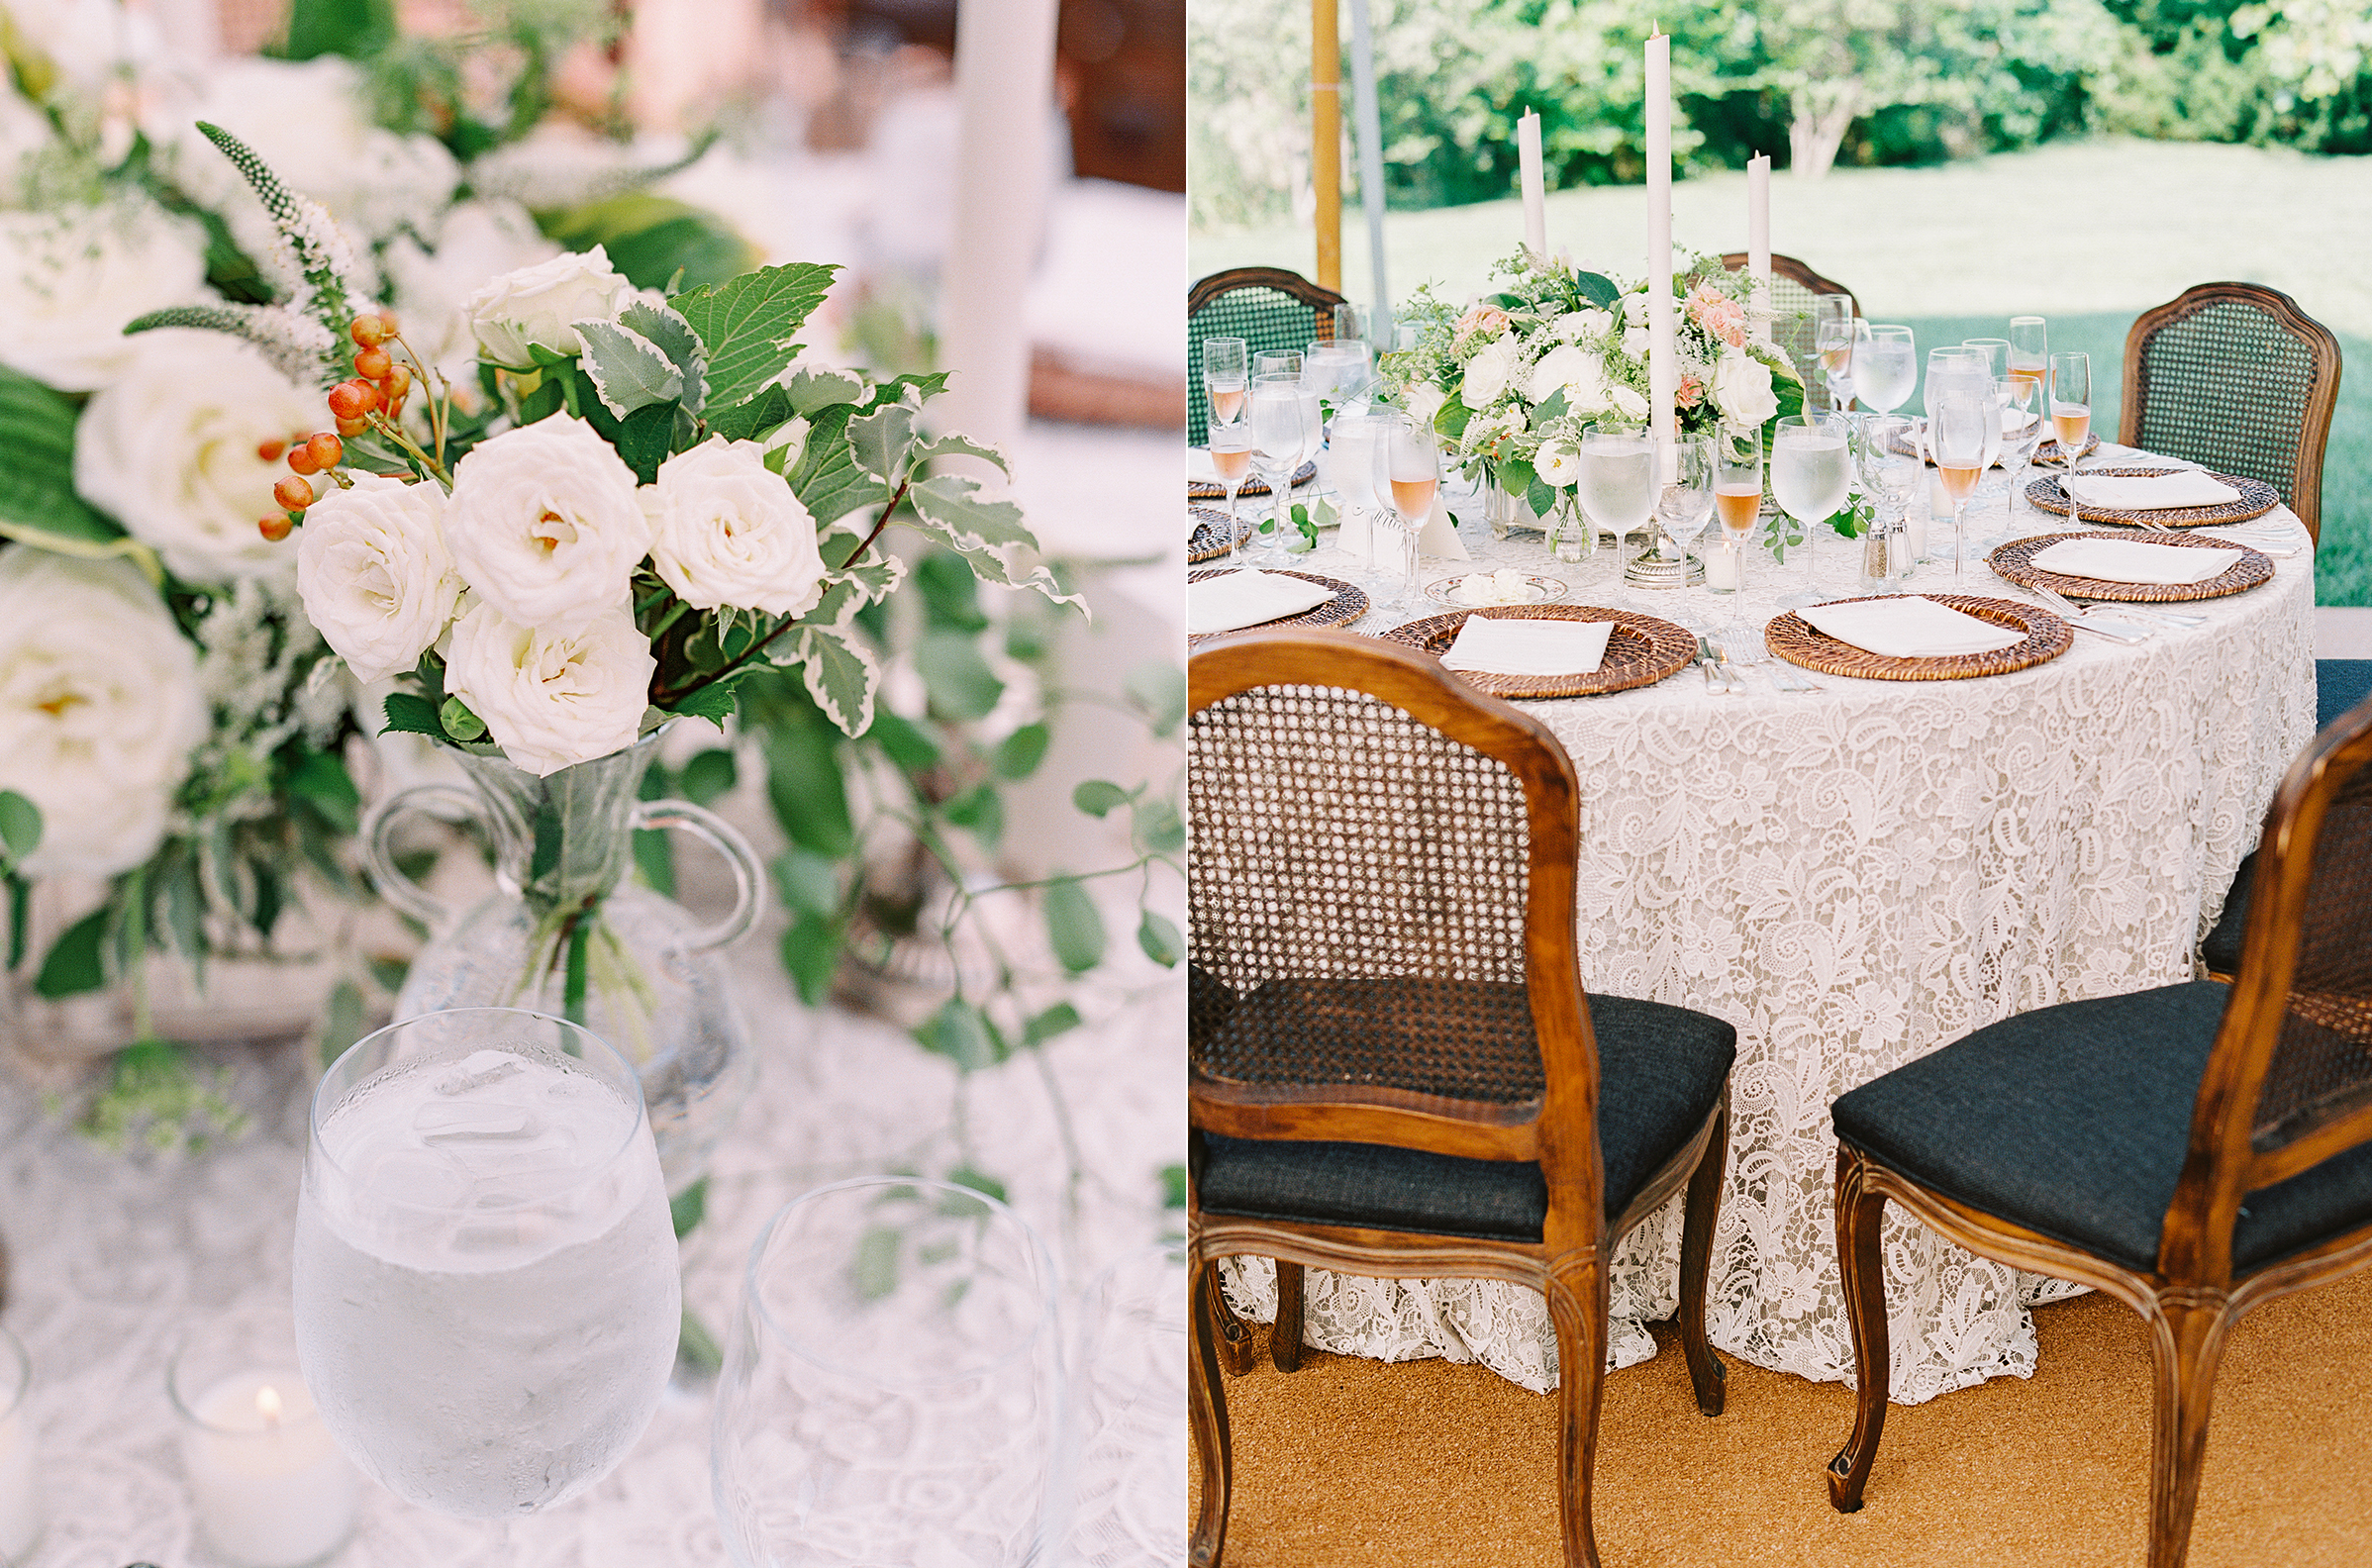 katie stoops photography-inn at perry cabin wedding35.jpg